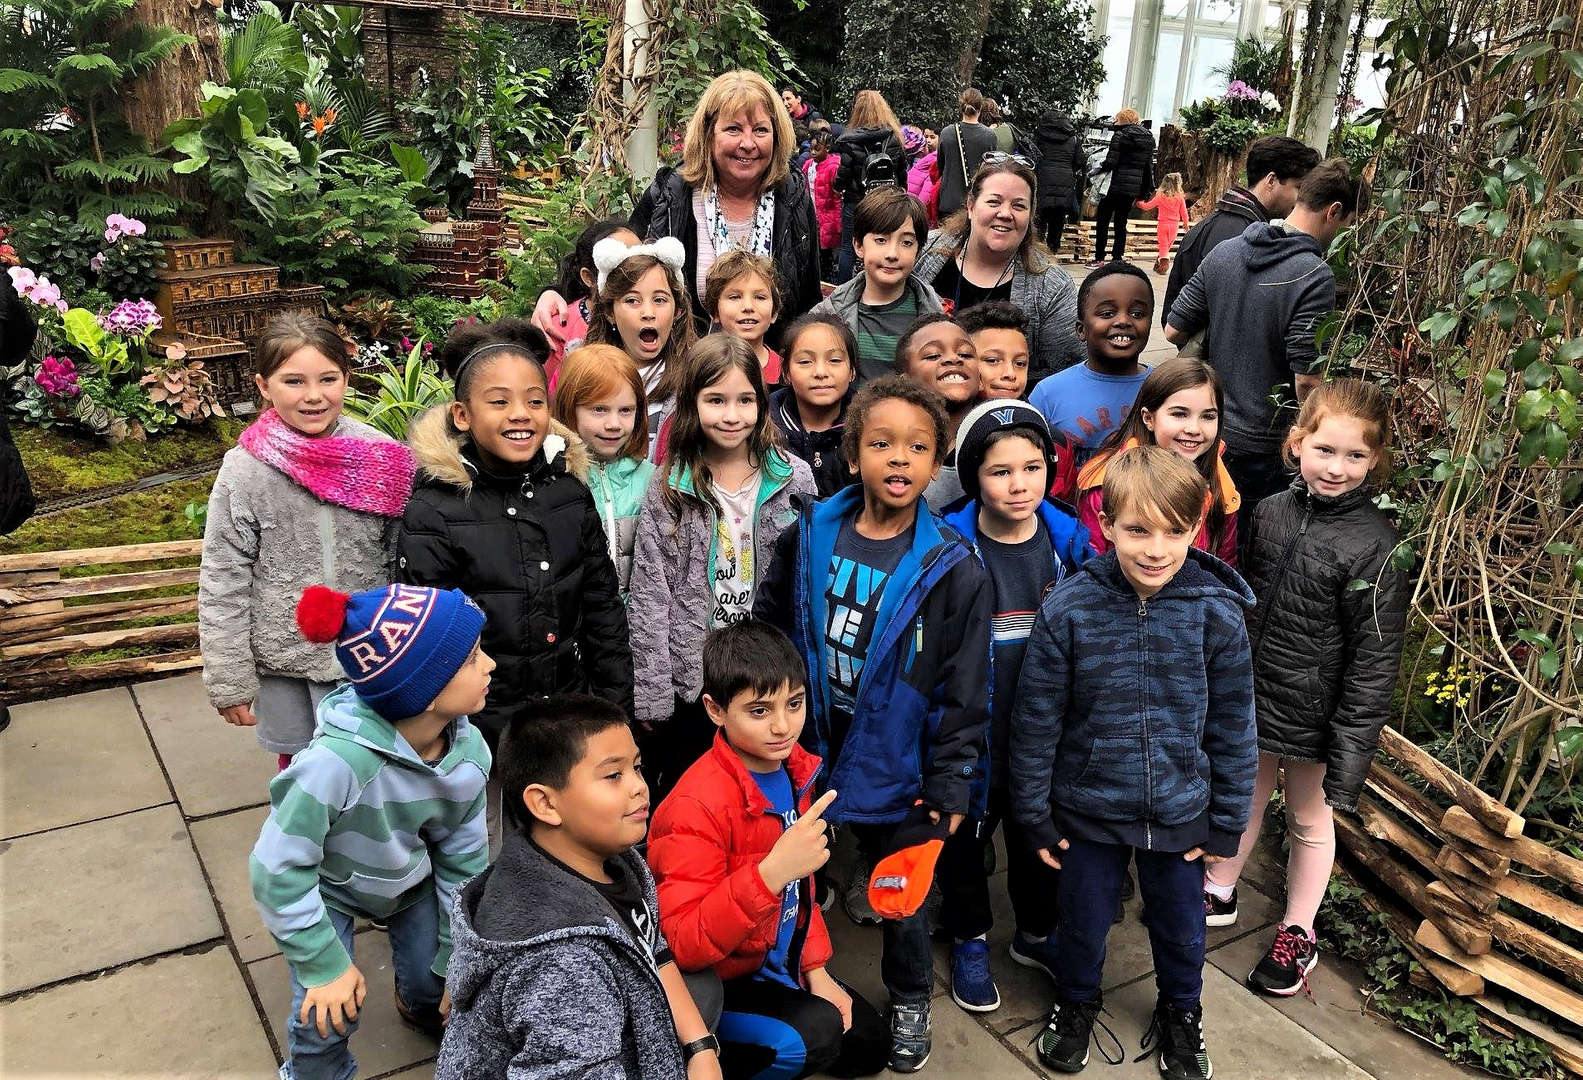 Third-graders pose for a photo at the New York Botanical Garden.